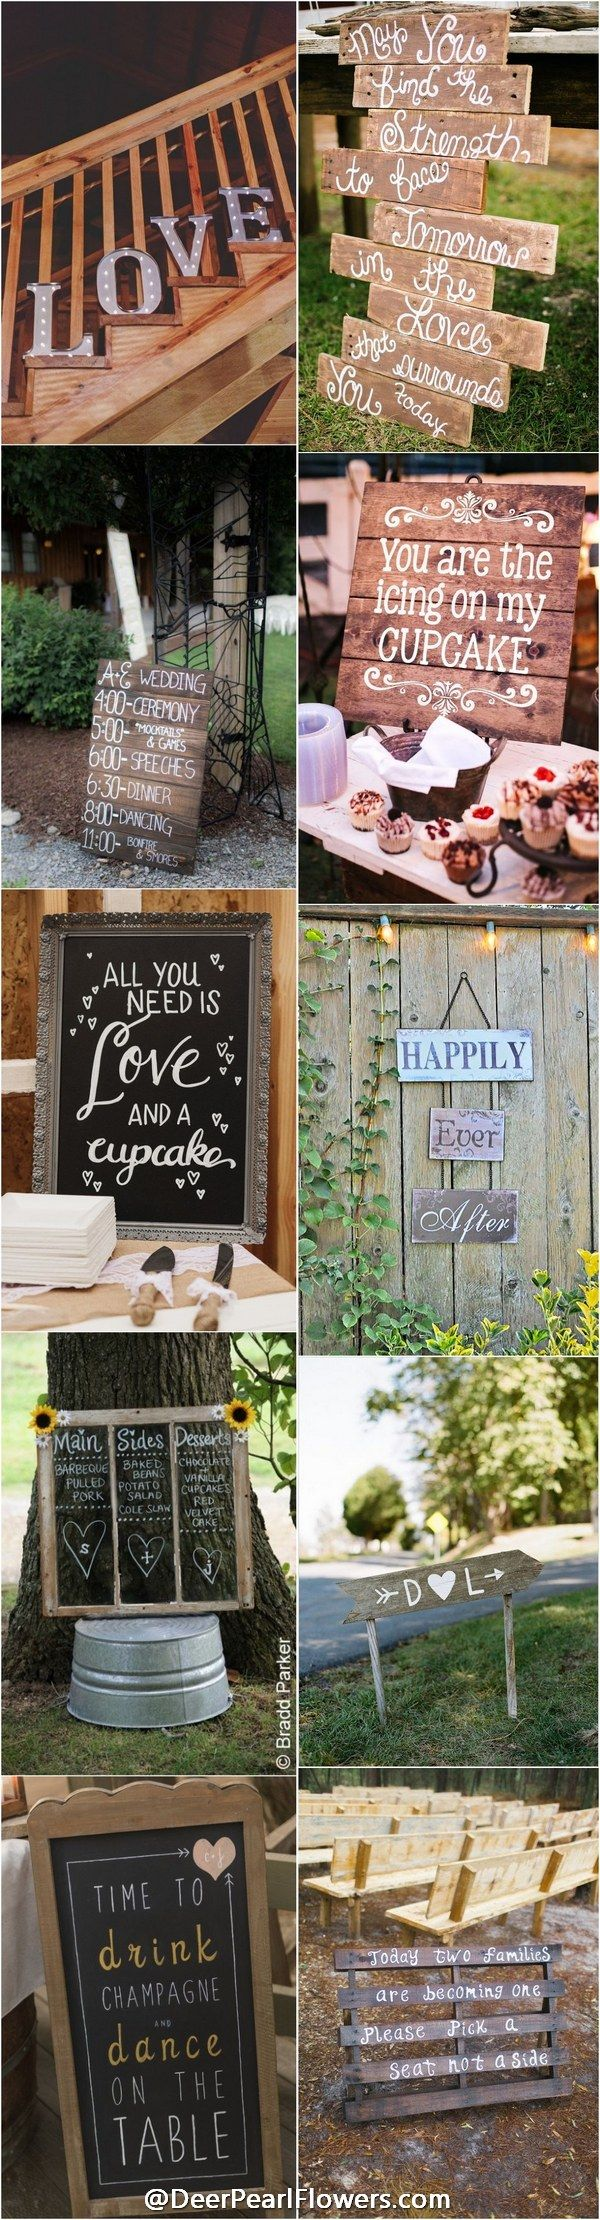 http://www.deerpearlflowers.com/30-rustic-wedding-signs-ideas-for-weddings/